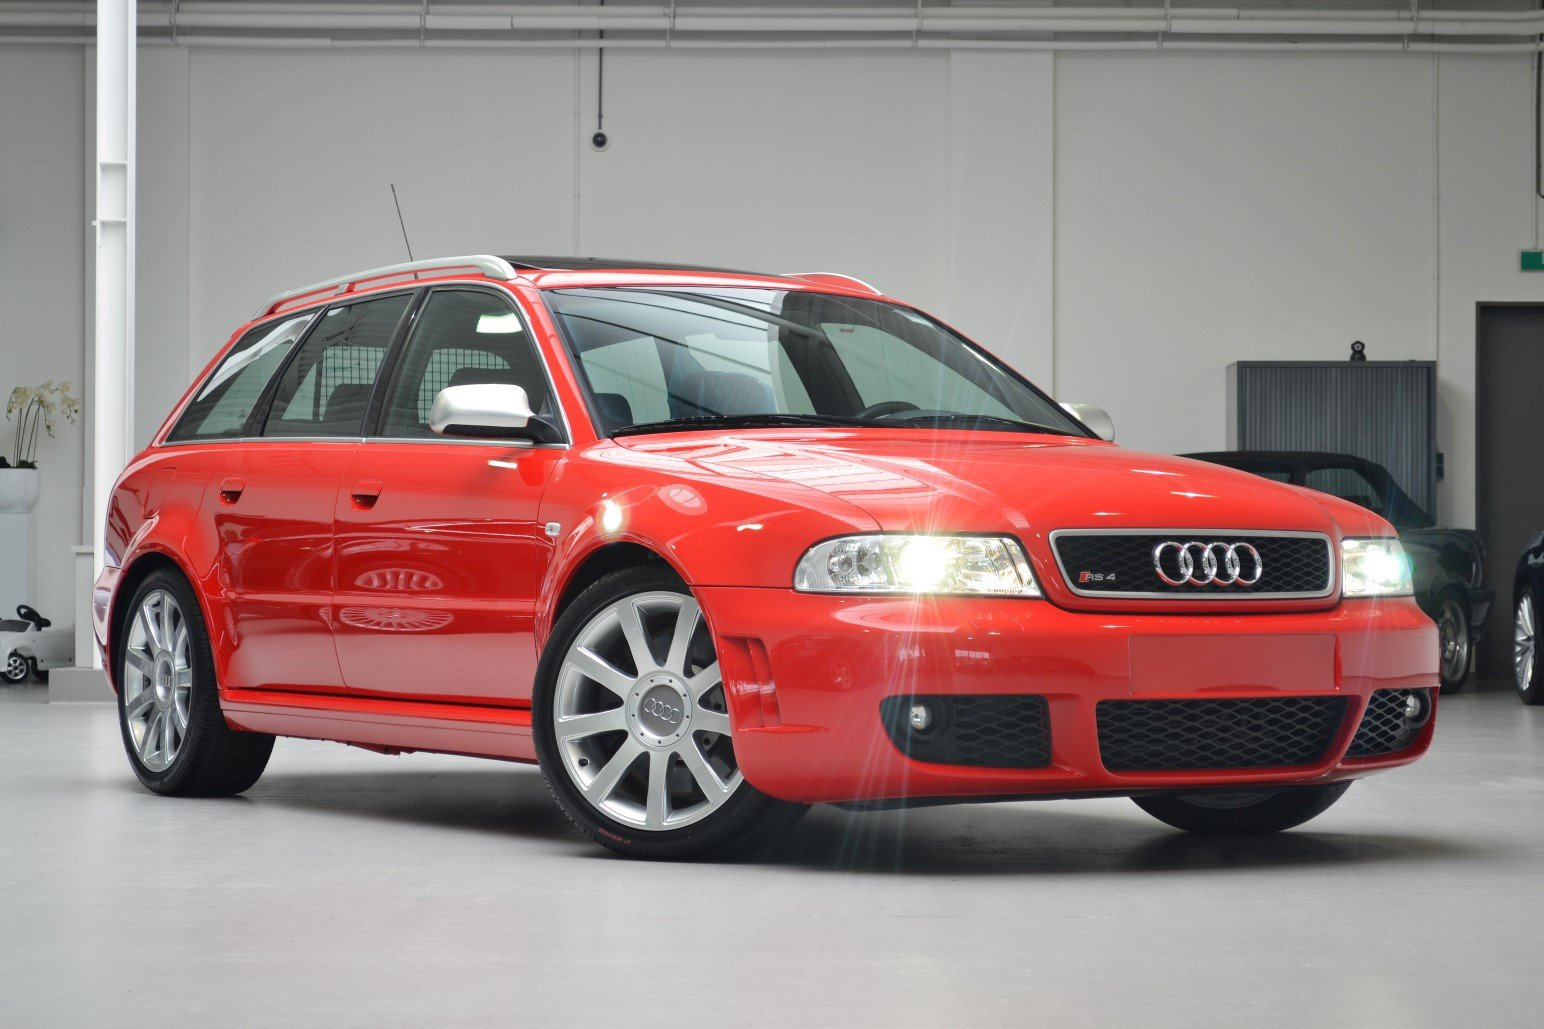 Audi rs4 b5 2000 rare misano red rhd mint conditio For Sale (picture 1 of 1)